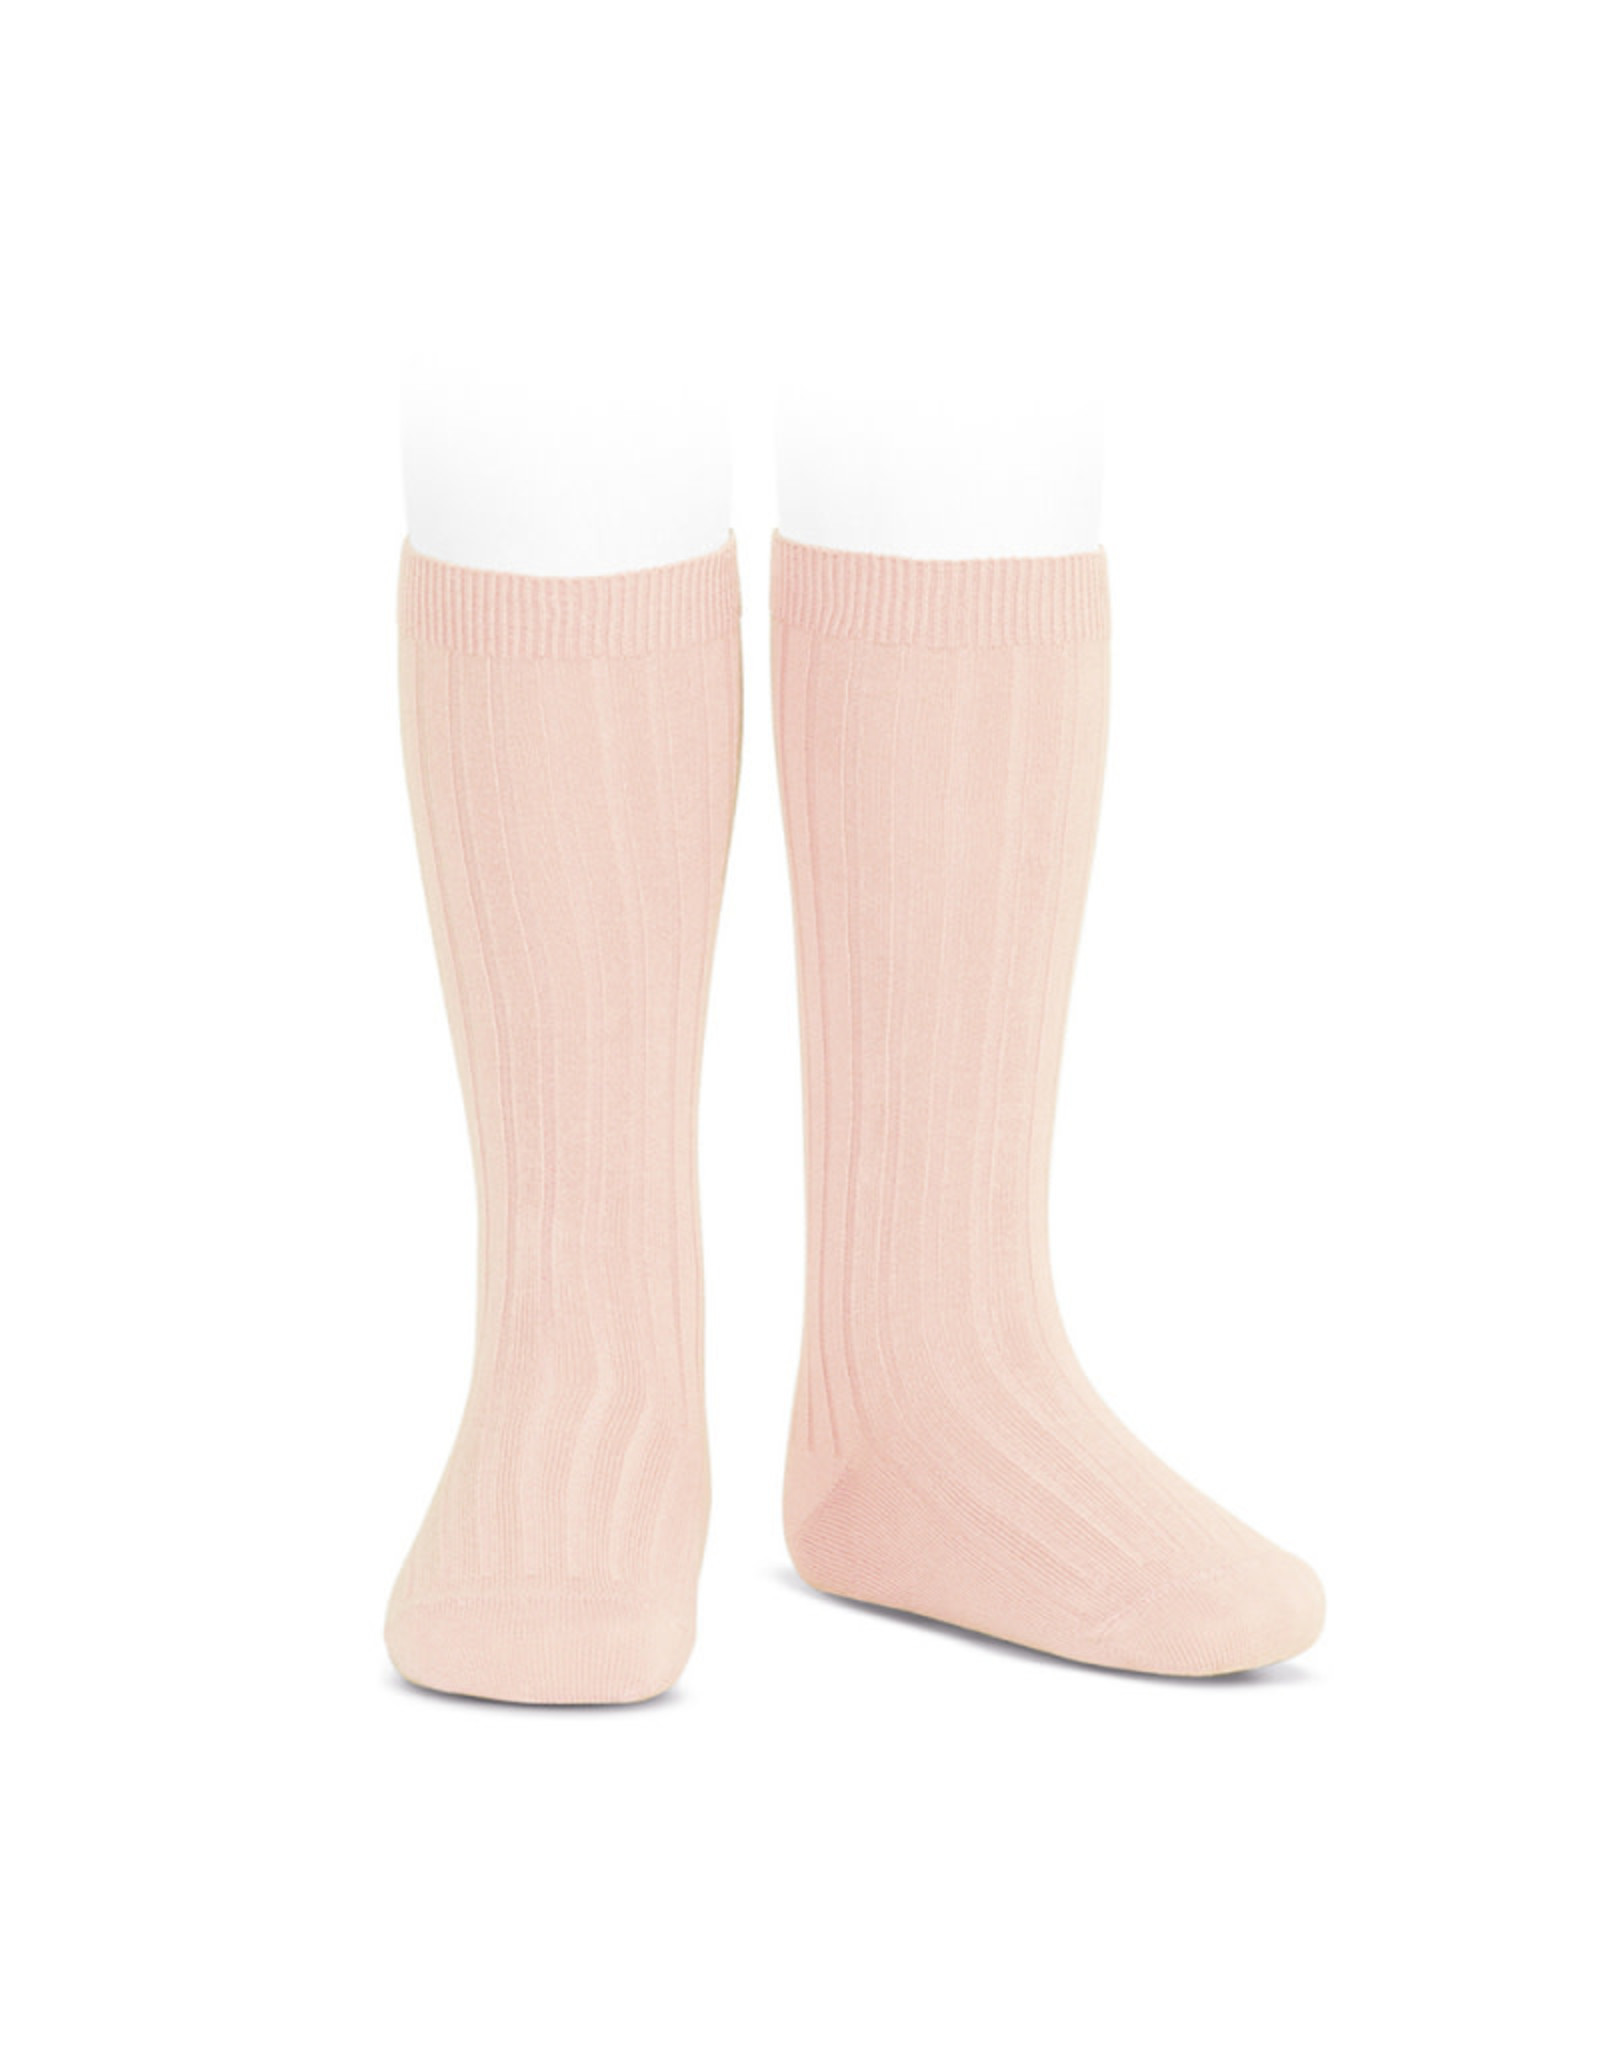 CONDOR Nude Ribbed Socks